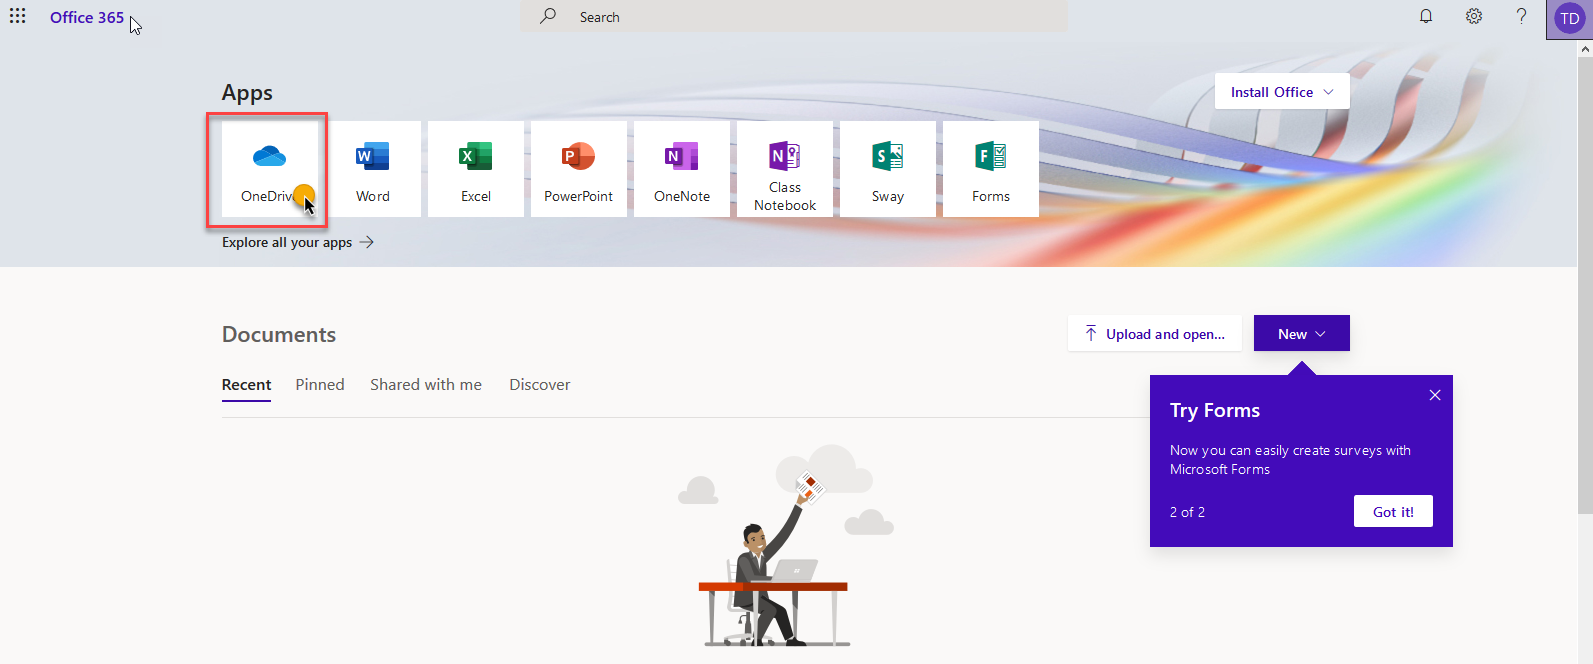 office365 portal with a click on OneDrive indicated